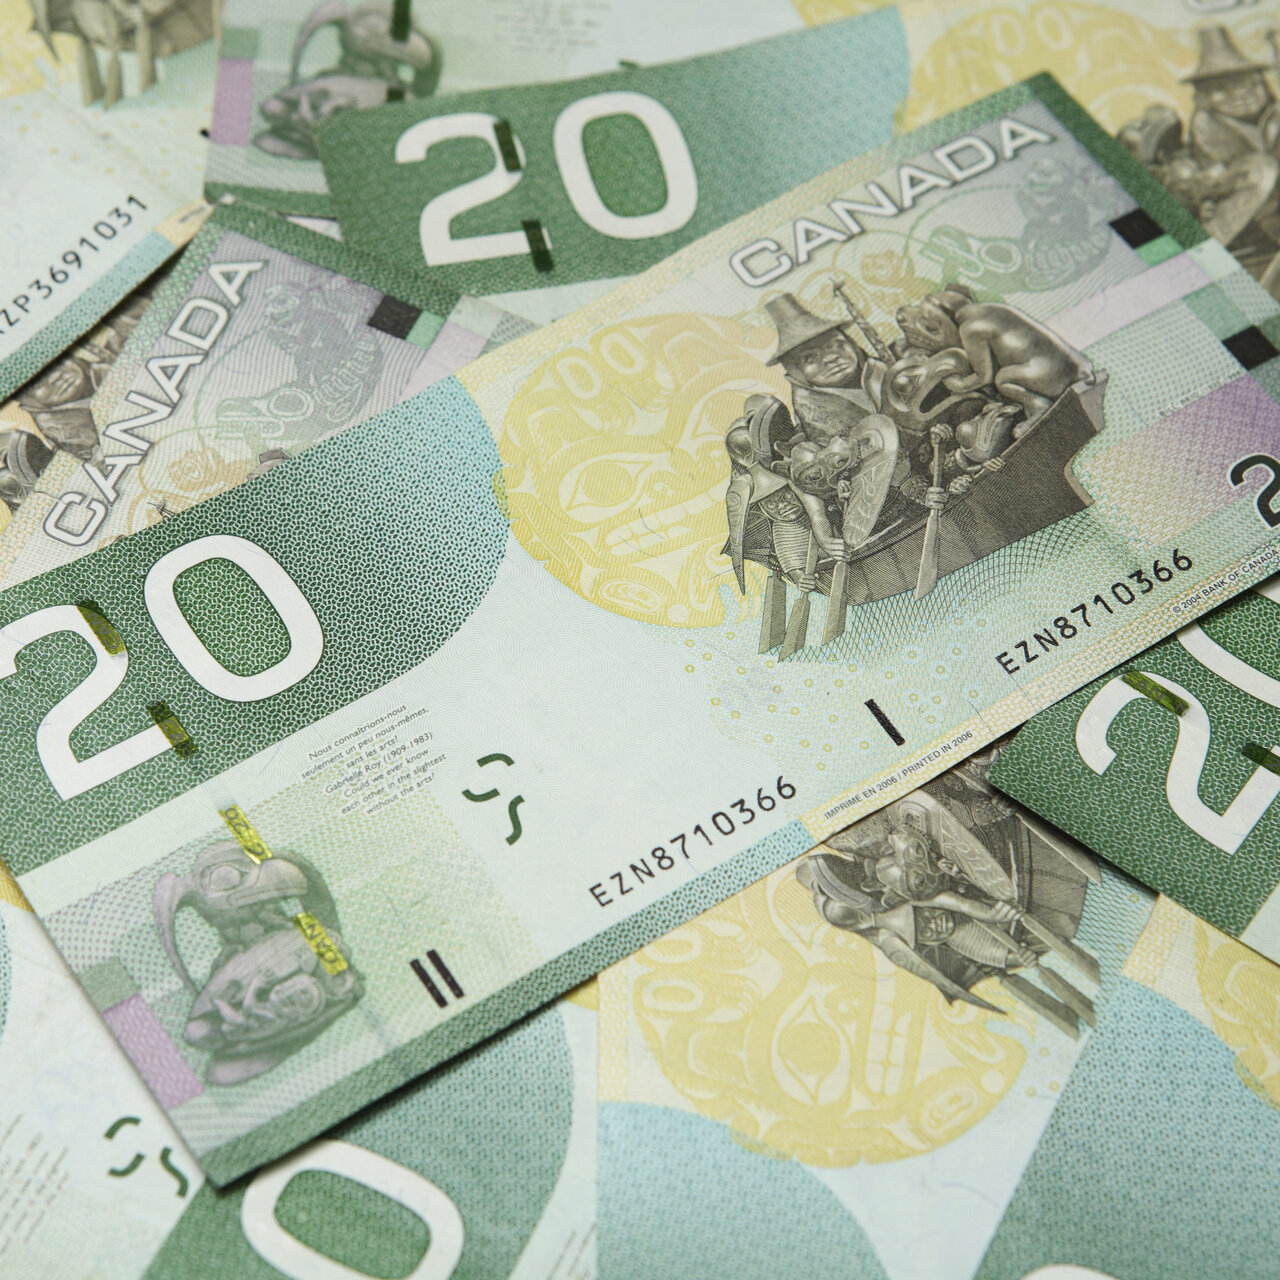 CAD: Outperformance not likely to continue next year - CIBC